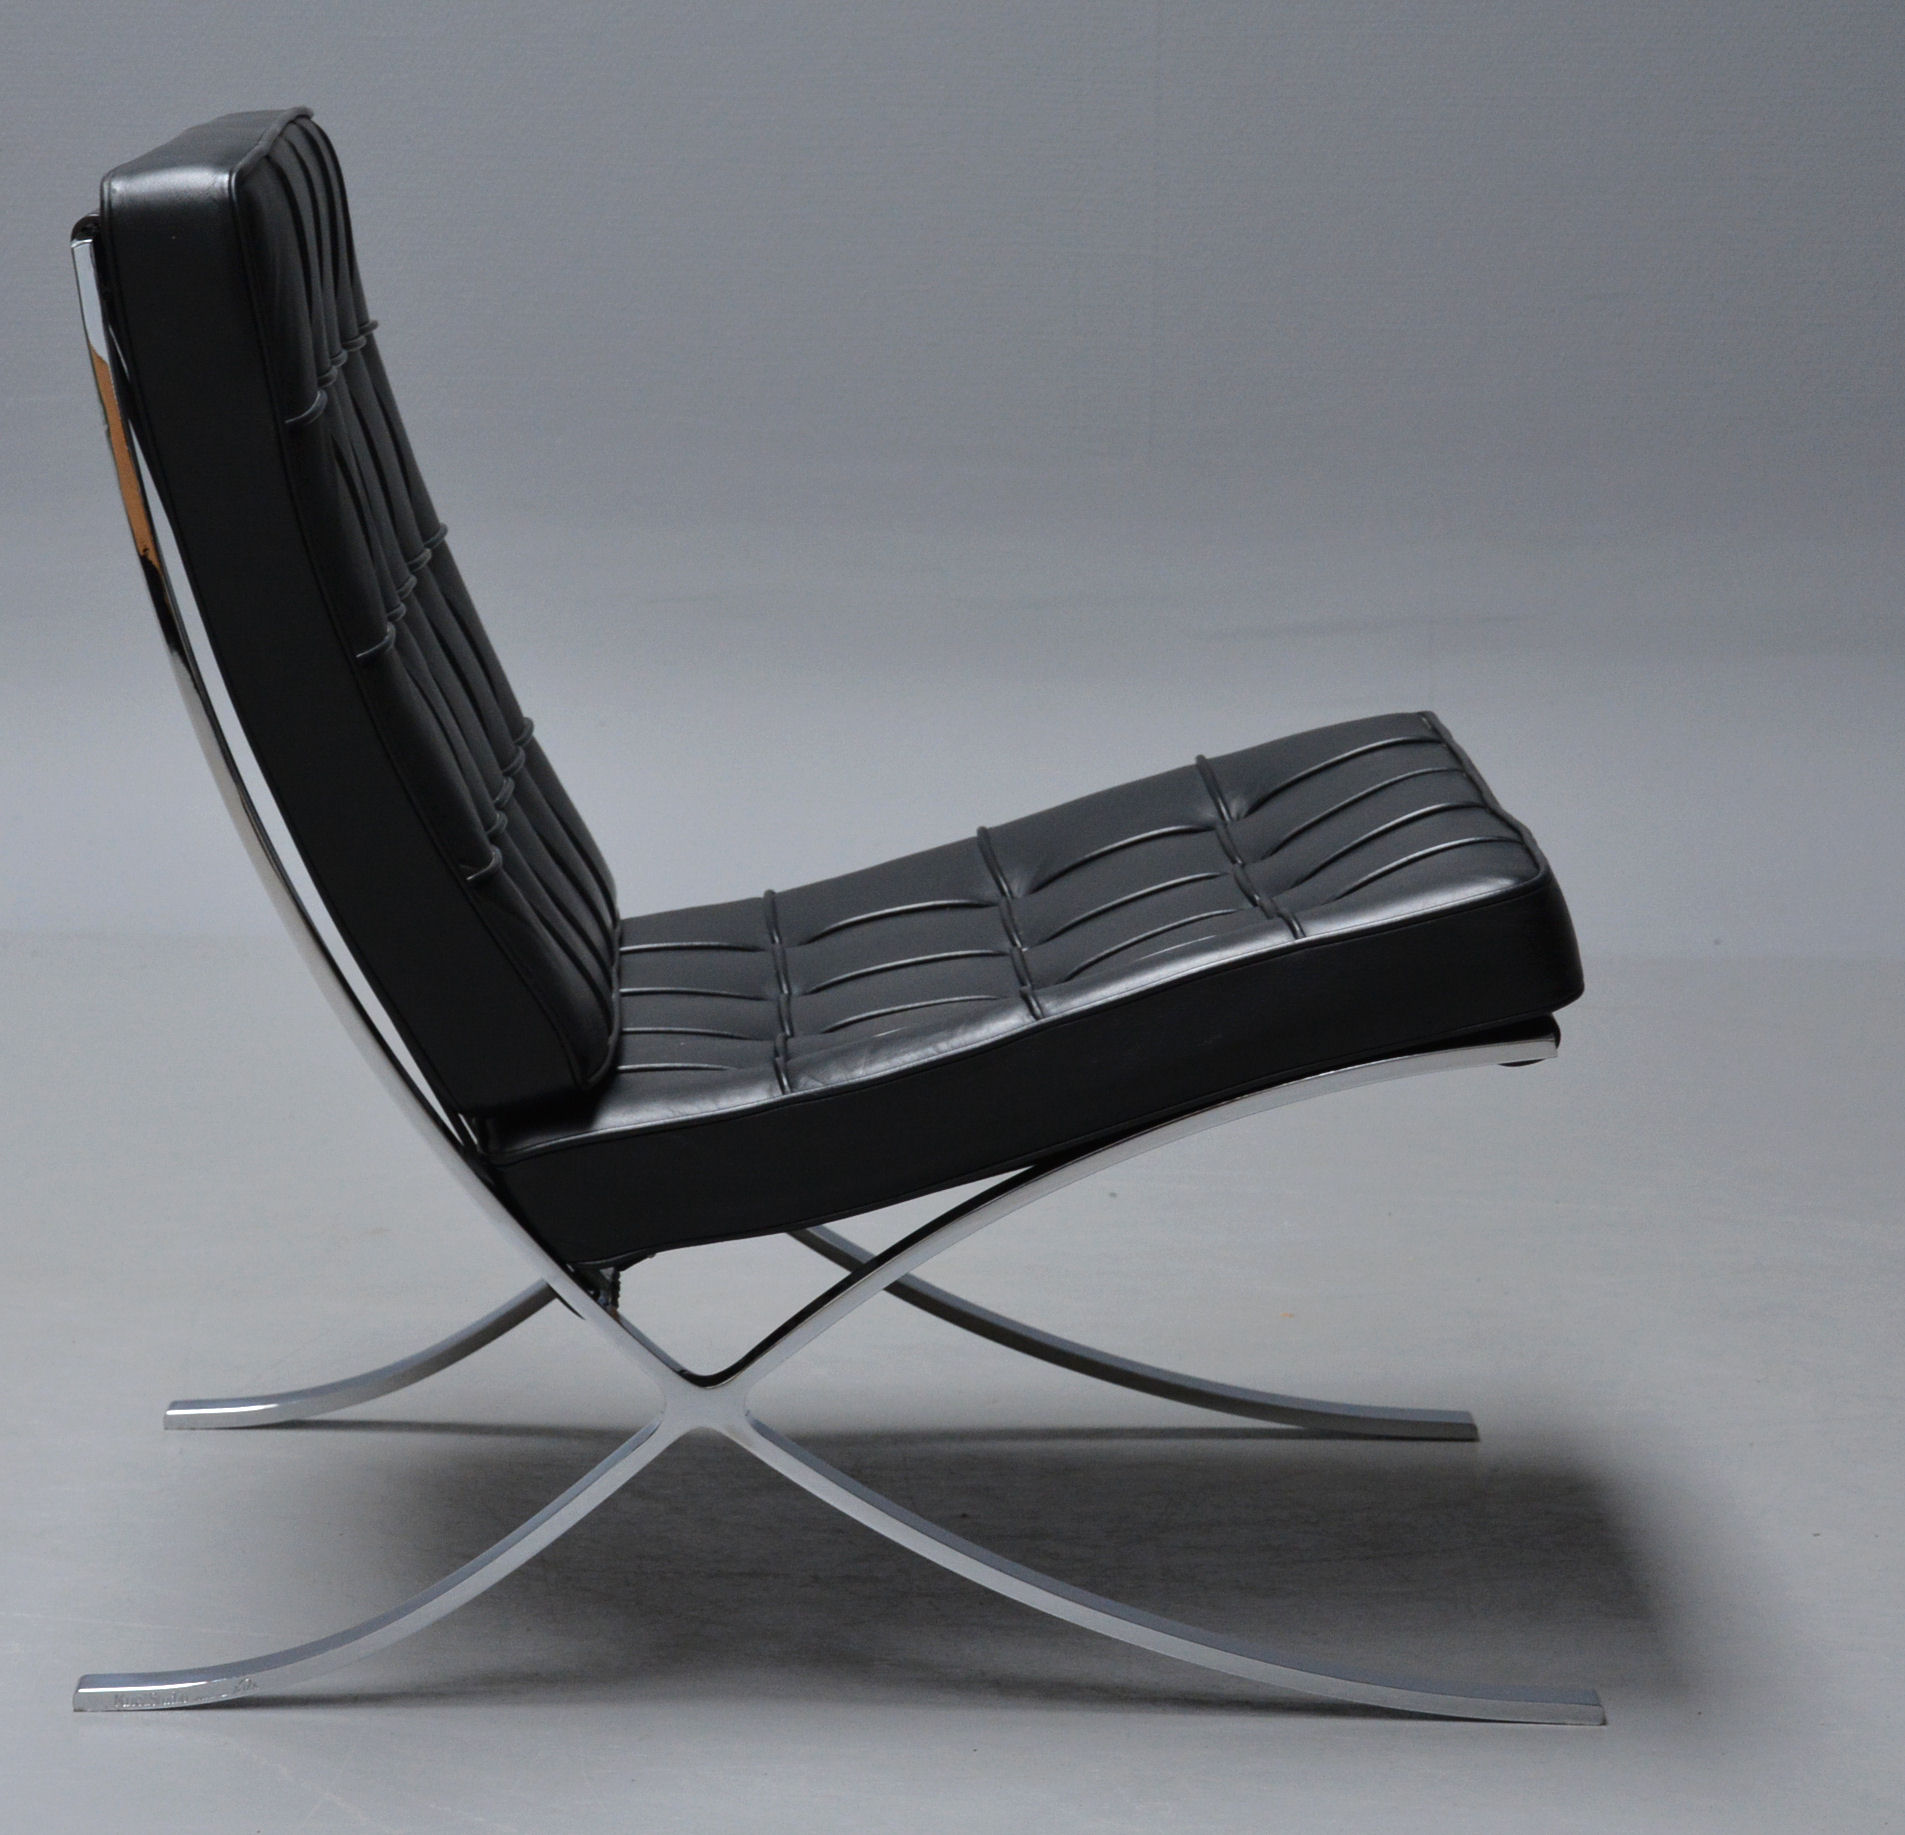 Ludwig Mies van der Rohe. 'Barcelona' lounge chair with accompanying numbered certificate